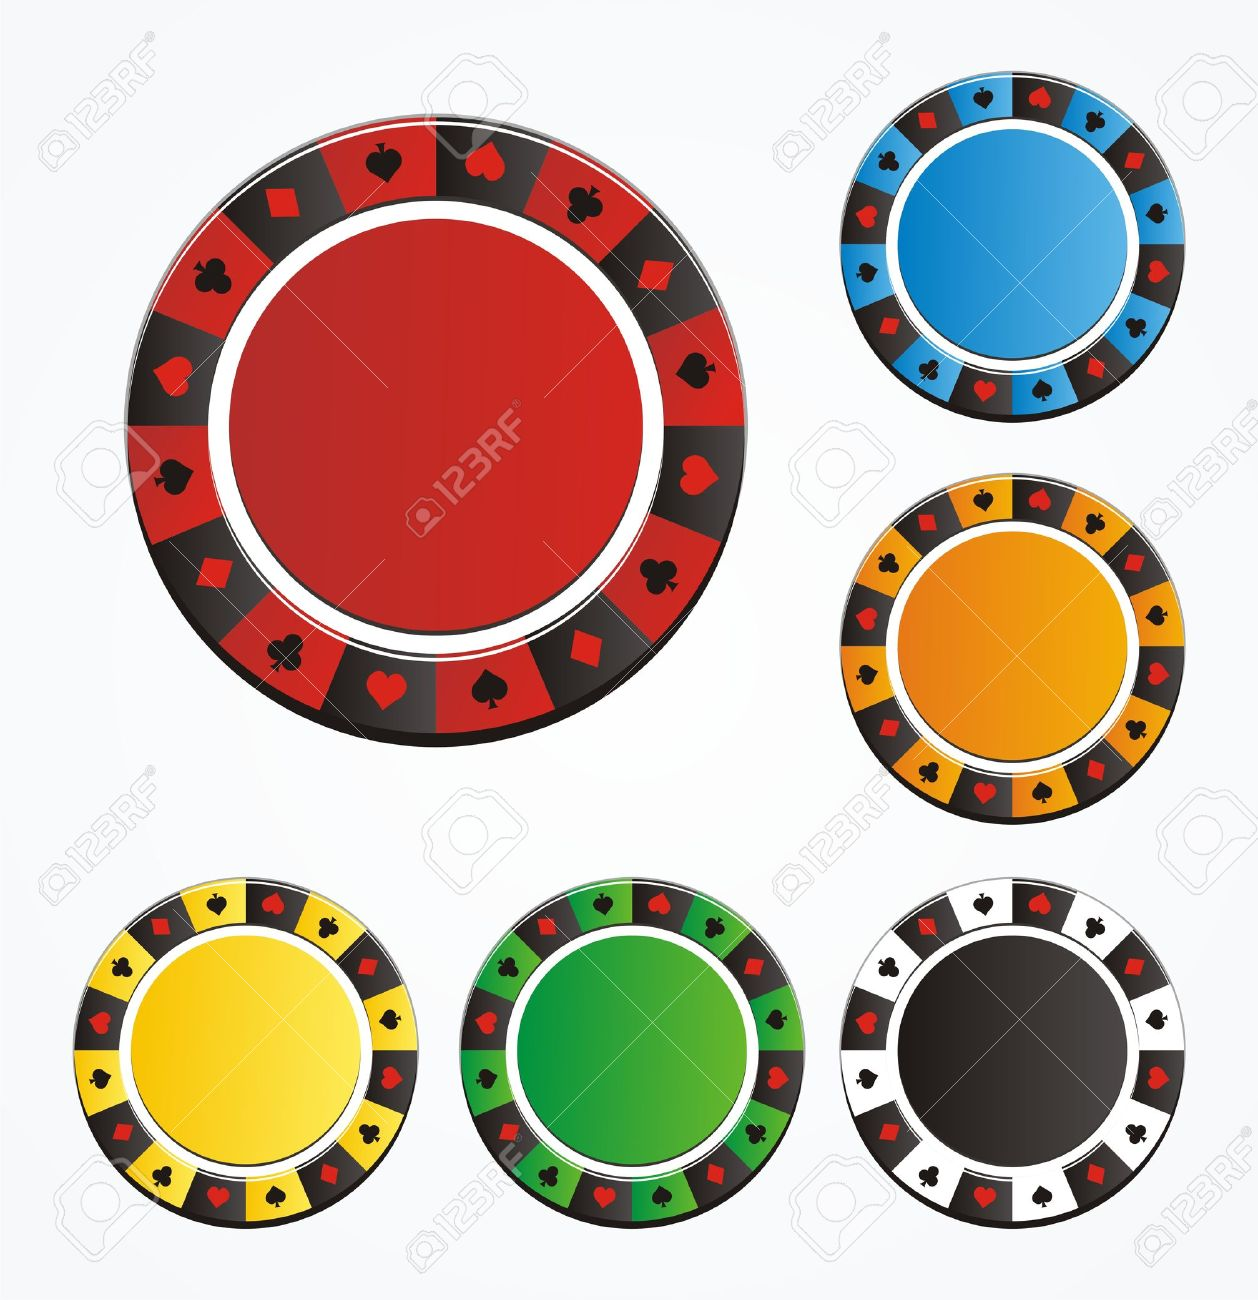 poker chip vector sets royalty free cliparts vectors and stock rh 123rf com poker chip stack vector poker chip vector image